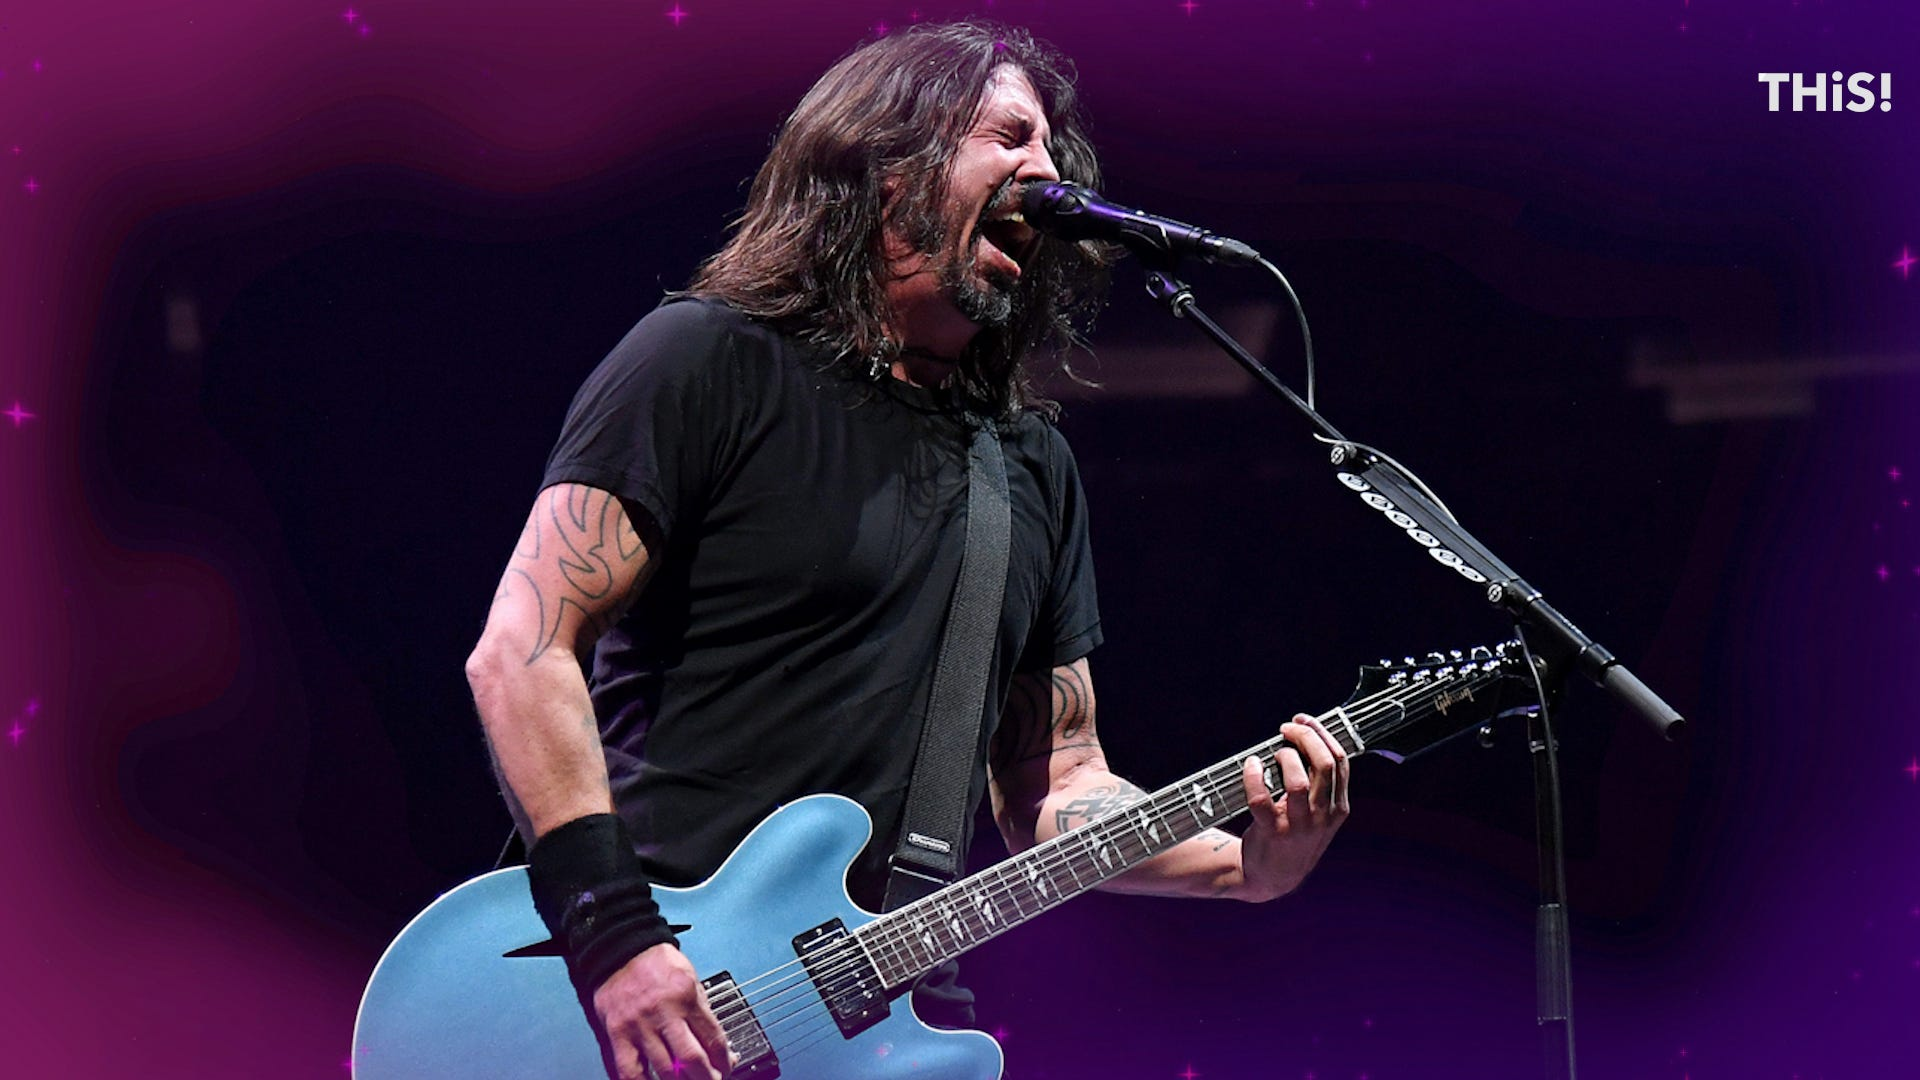 Dave Grohl brings out Dave Chappelle at Foo Fighters sold-out Madison Square Garden show